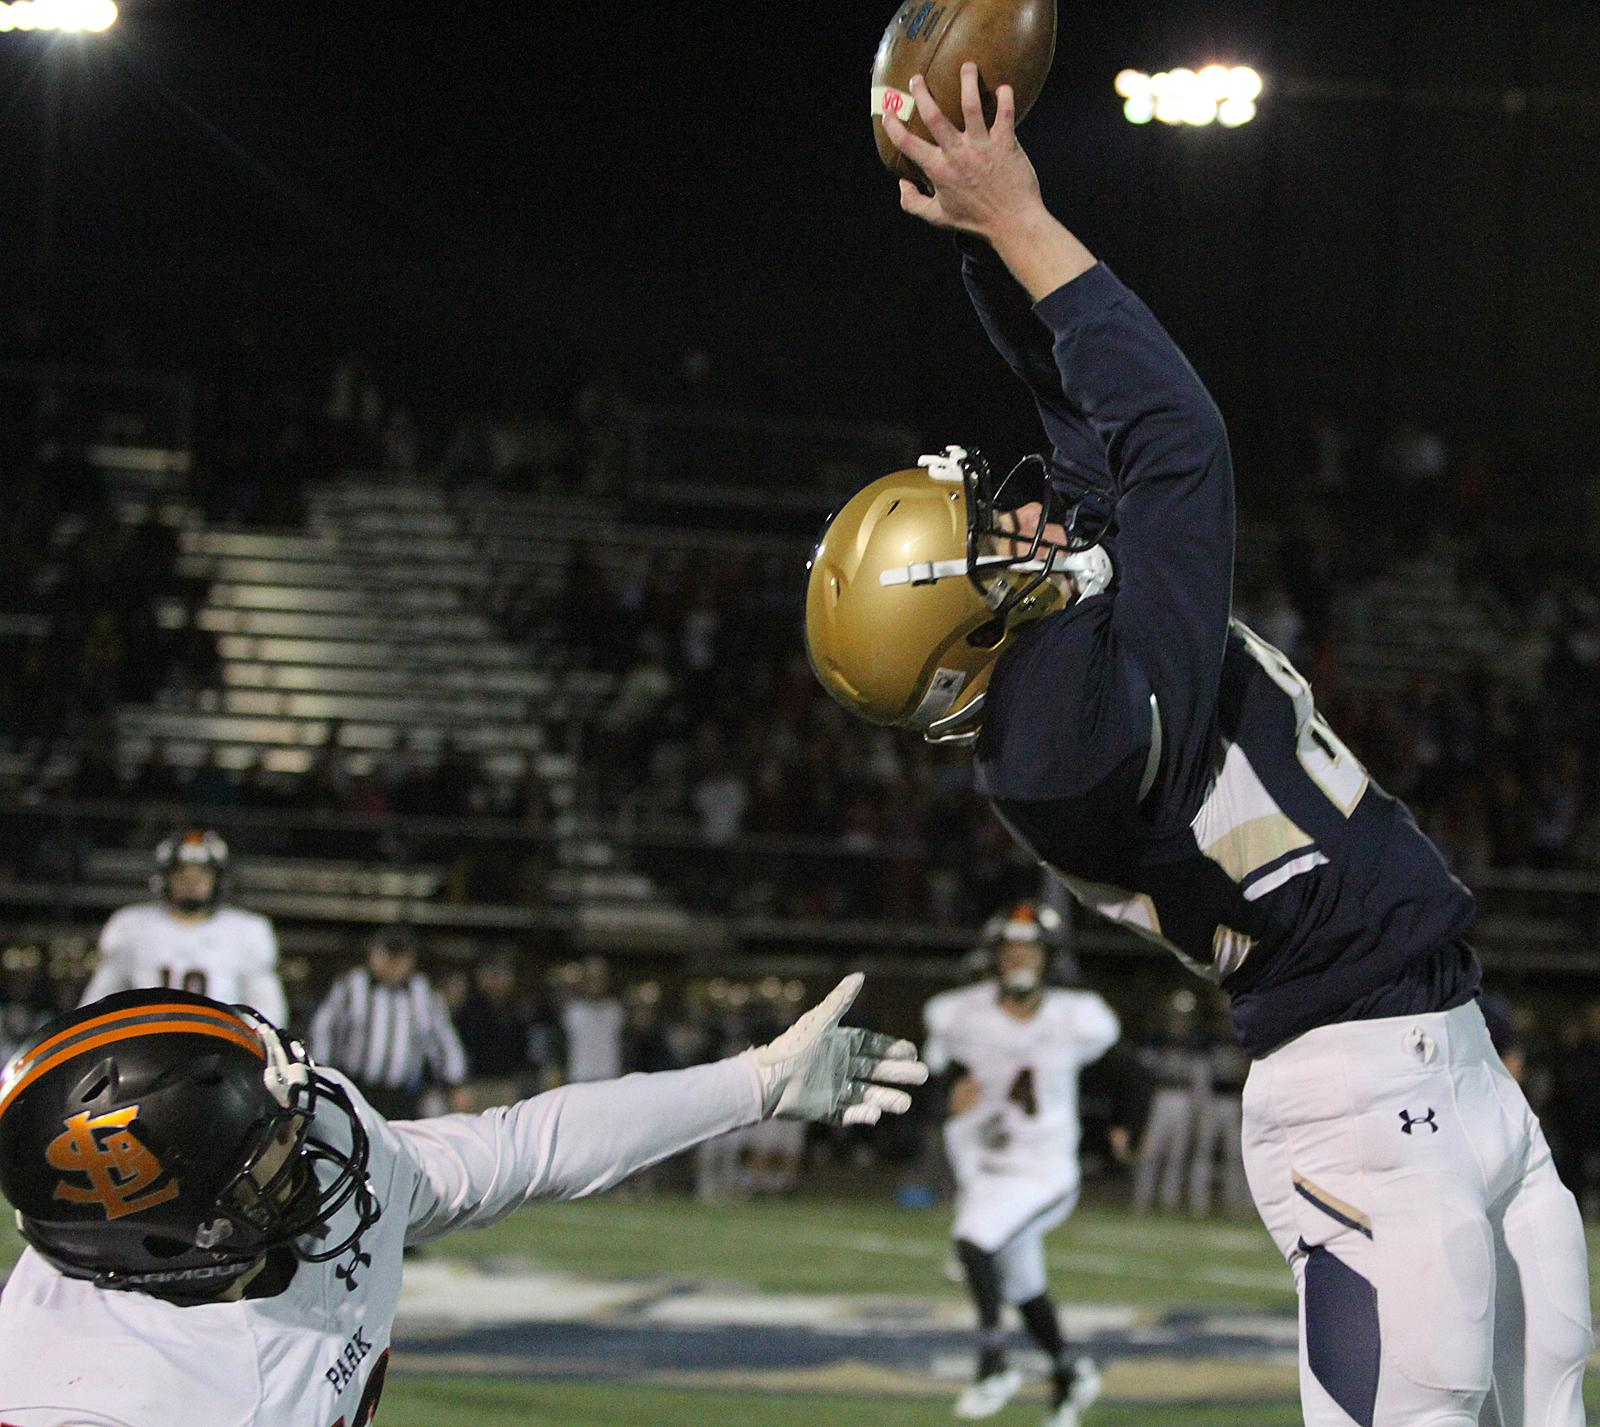 Chanhassen sophomore wideout Charlie Coenen hauls in a pass near the sideline to set up the Storm's second touchdown Friday night. Photo by Drew Herron, SportsEngine